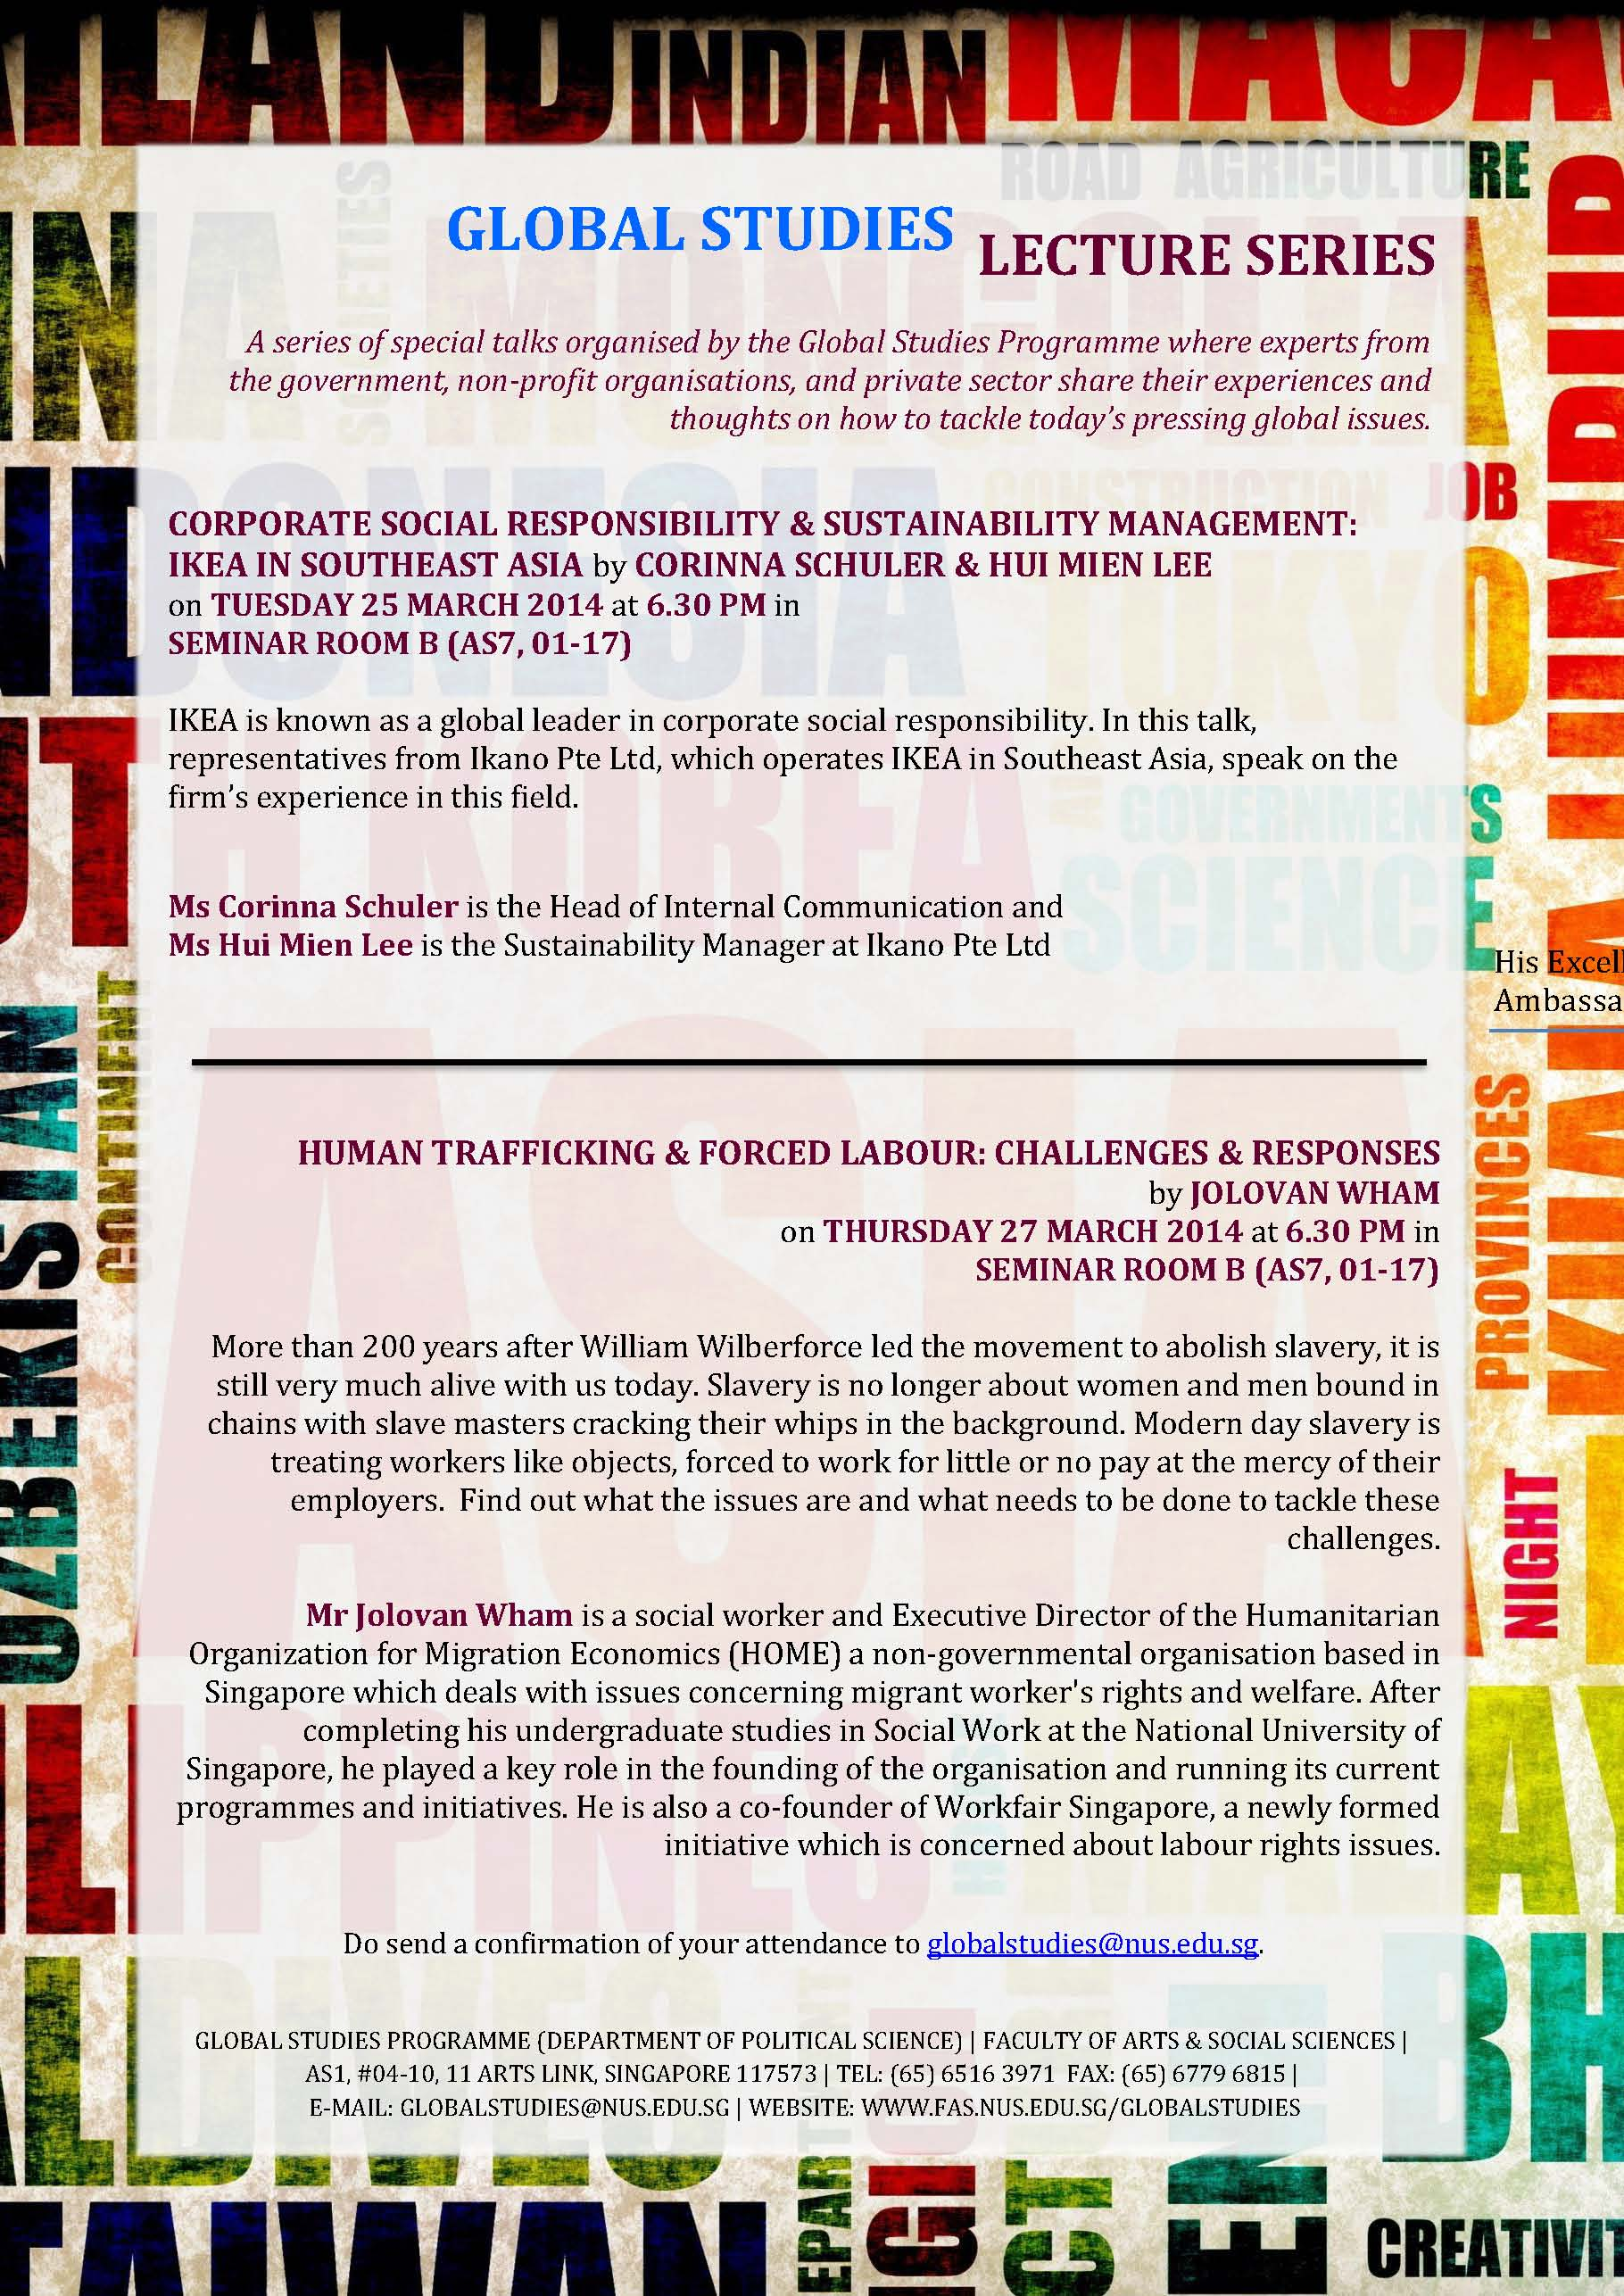 GL Lecture Series - March 25 and 27 2014